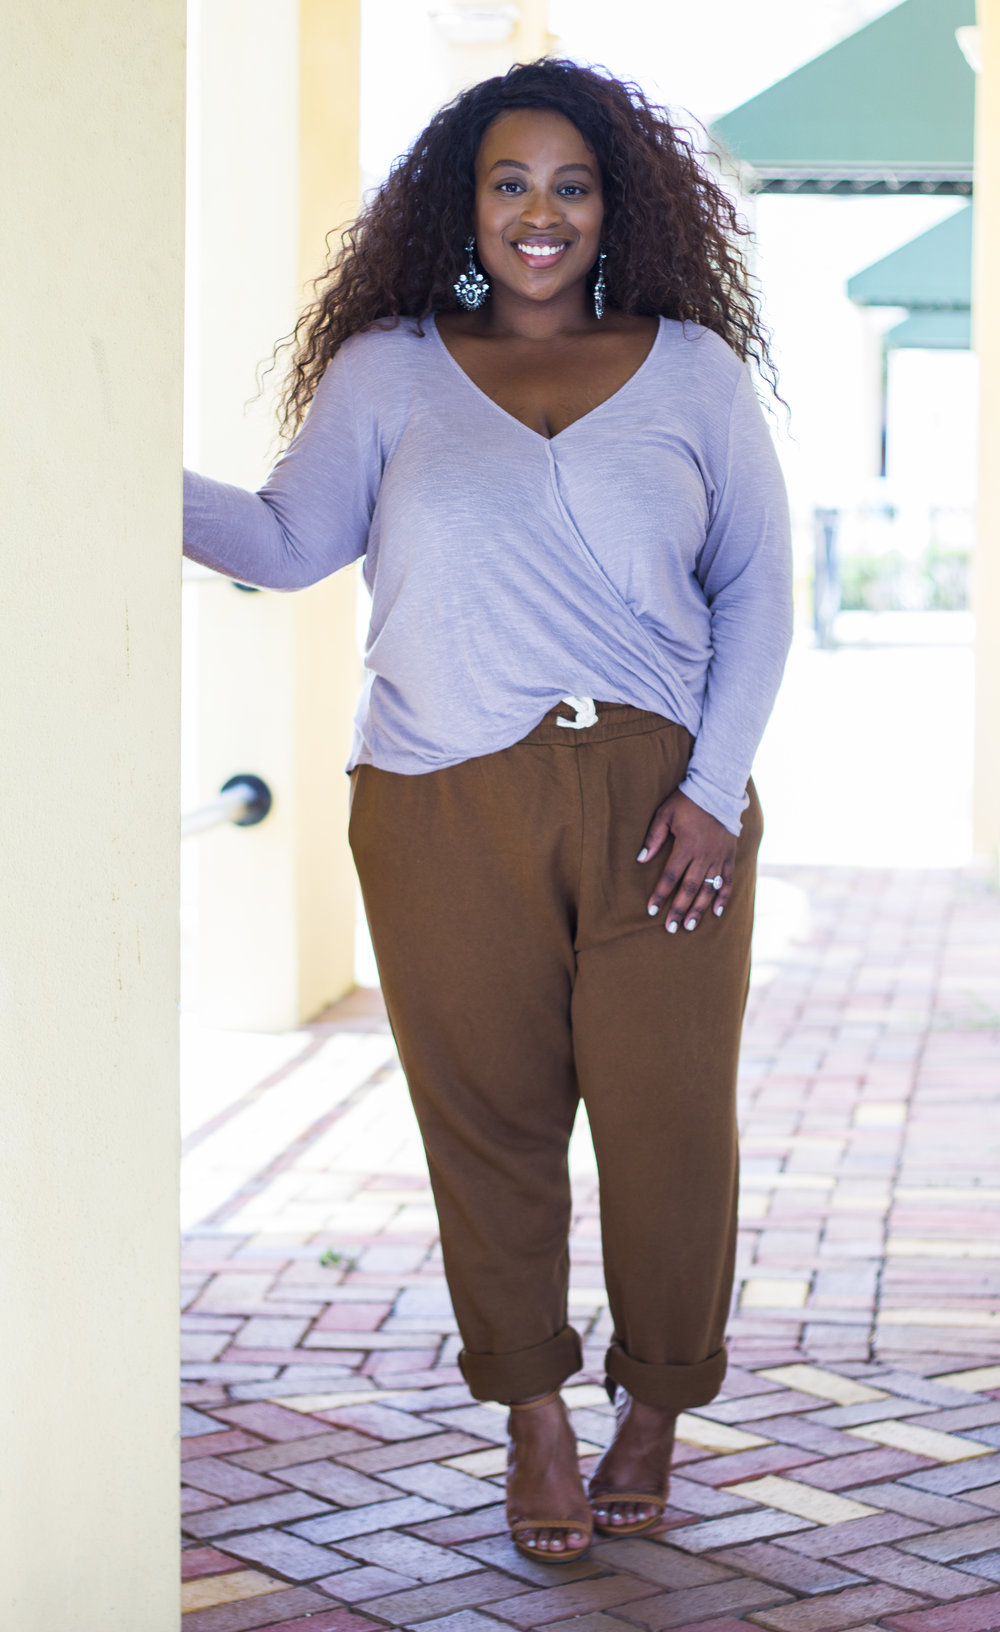 Earrings: A gft / Surplice Top: Forever21 / Joggers: Zara / Sandals: Charlotte Russe